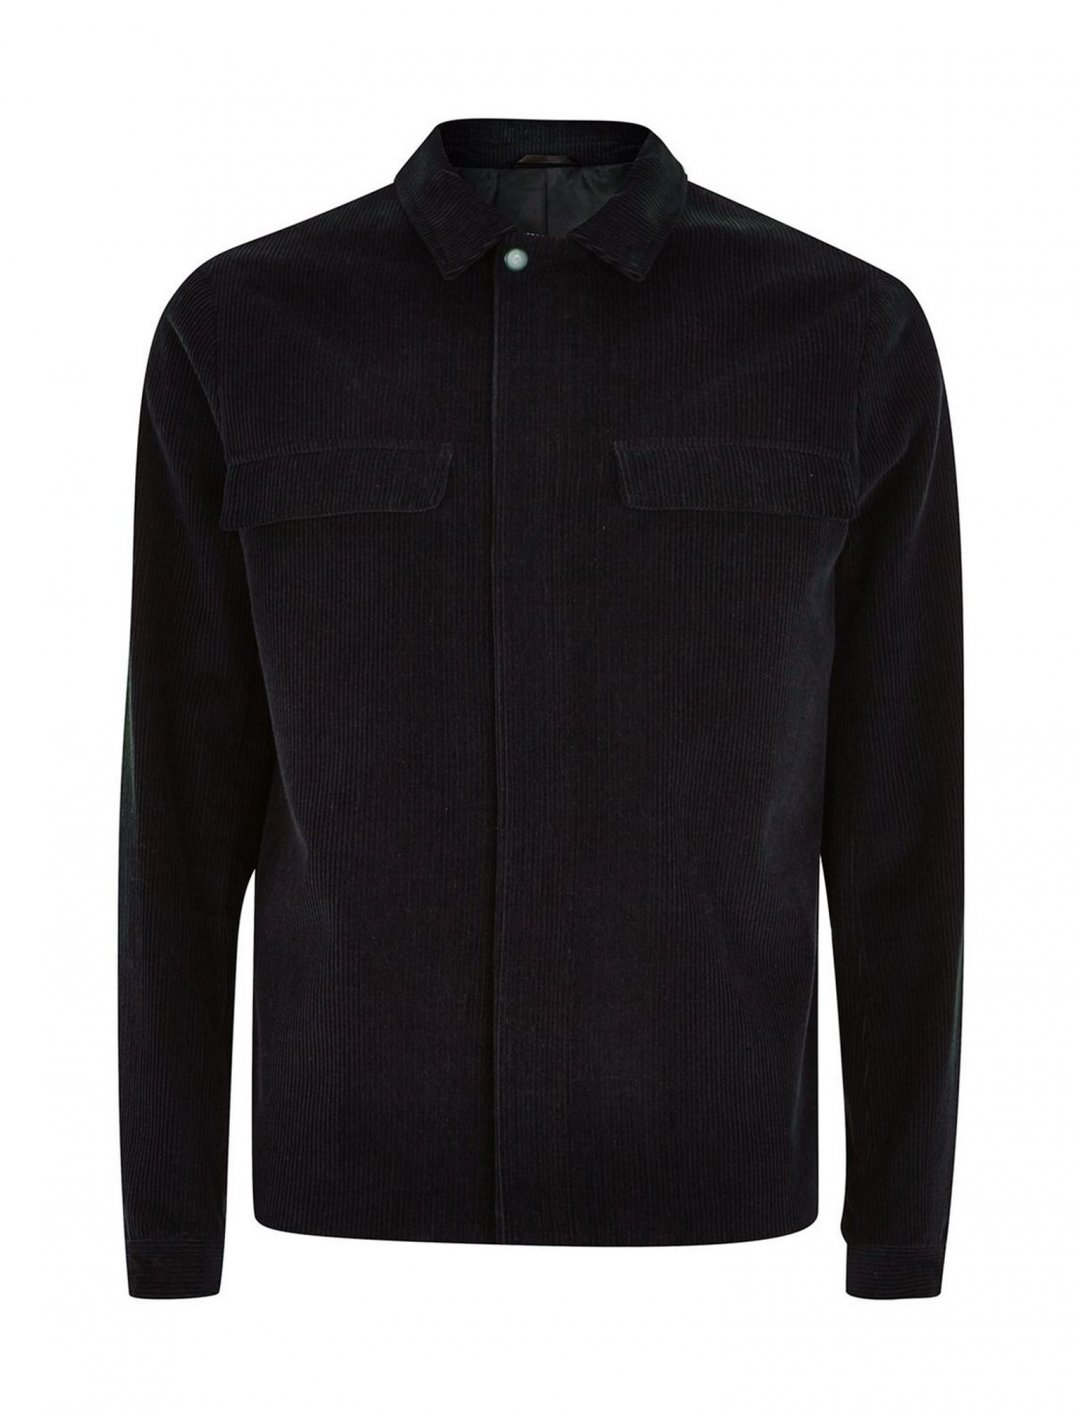 "Topman Zip Through Jacket {""id"":5,""product_section_id"":1,""name"":""Clothing"",""order"":5} Topman"